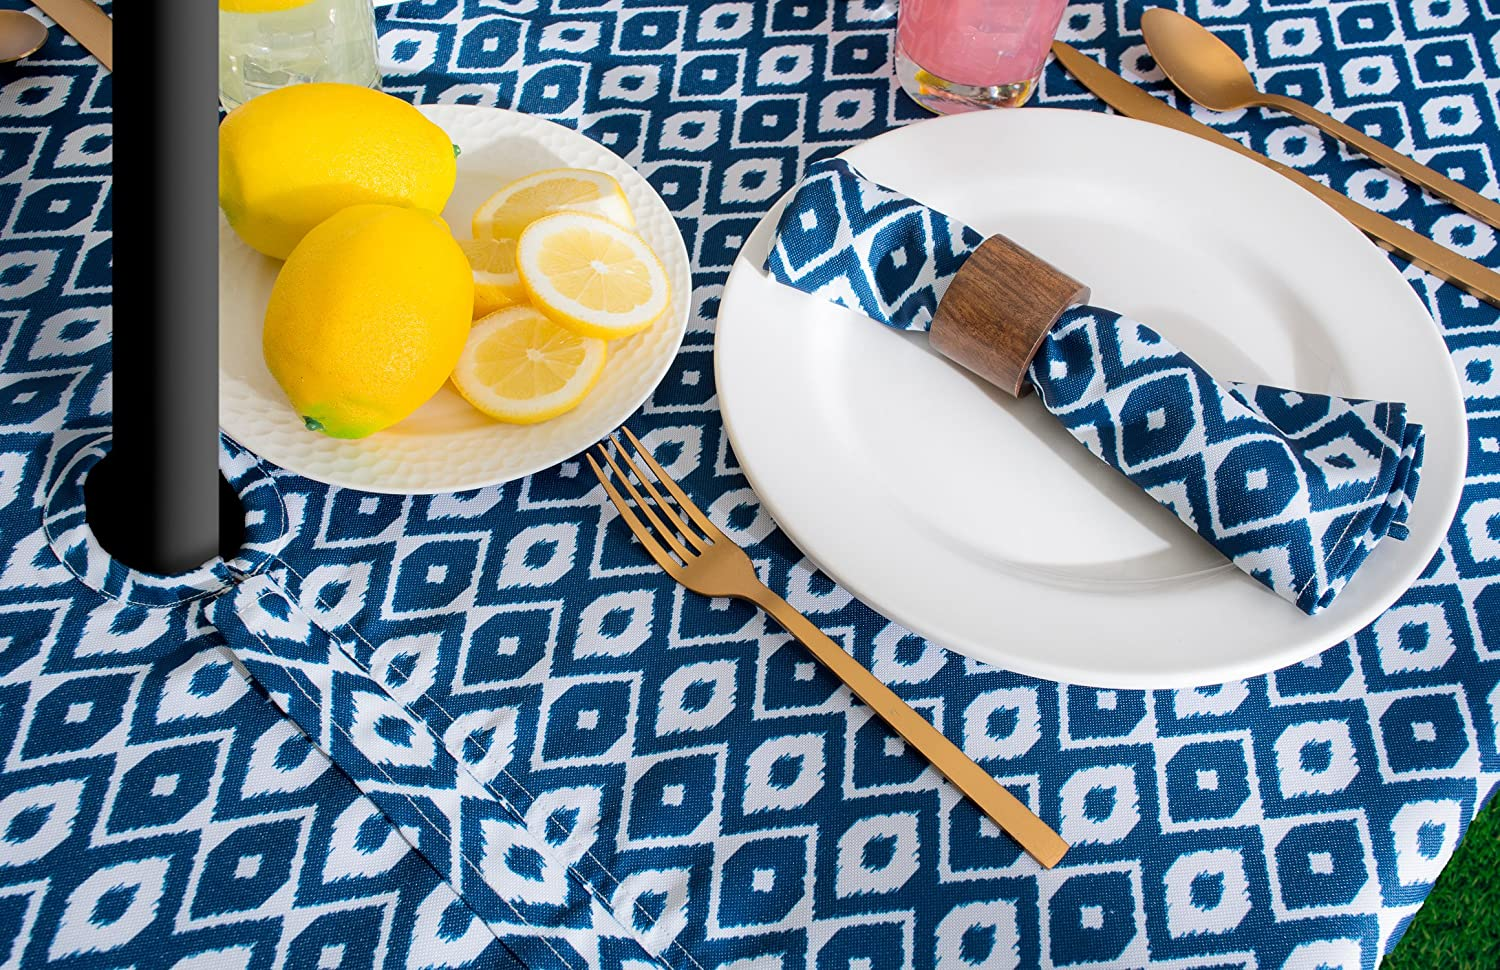 60x84 Round Aqua Diamond w CAMZ36754 Zipper Tablecloth for Outdoor Use with Umbrella Covered Tables Machine Washable Seats 6 to 8 People Spill Proof DII 100/% Polyester